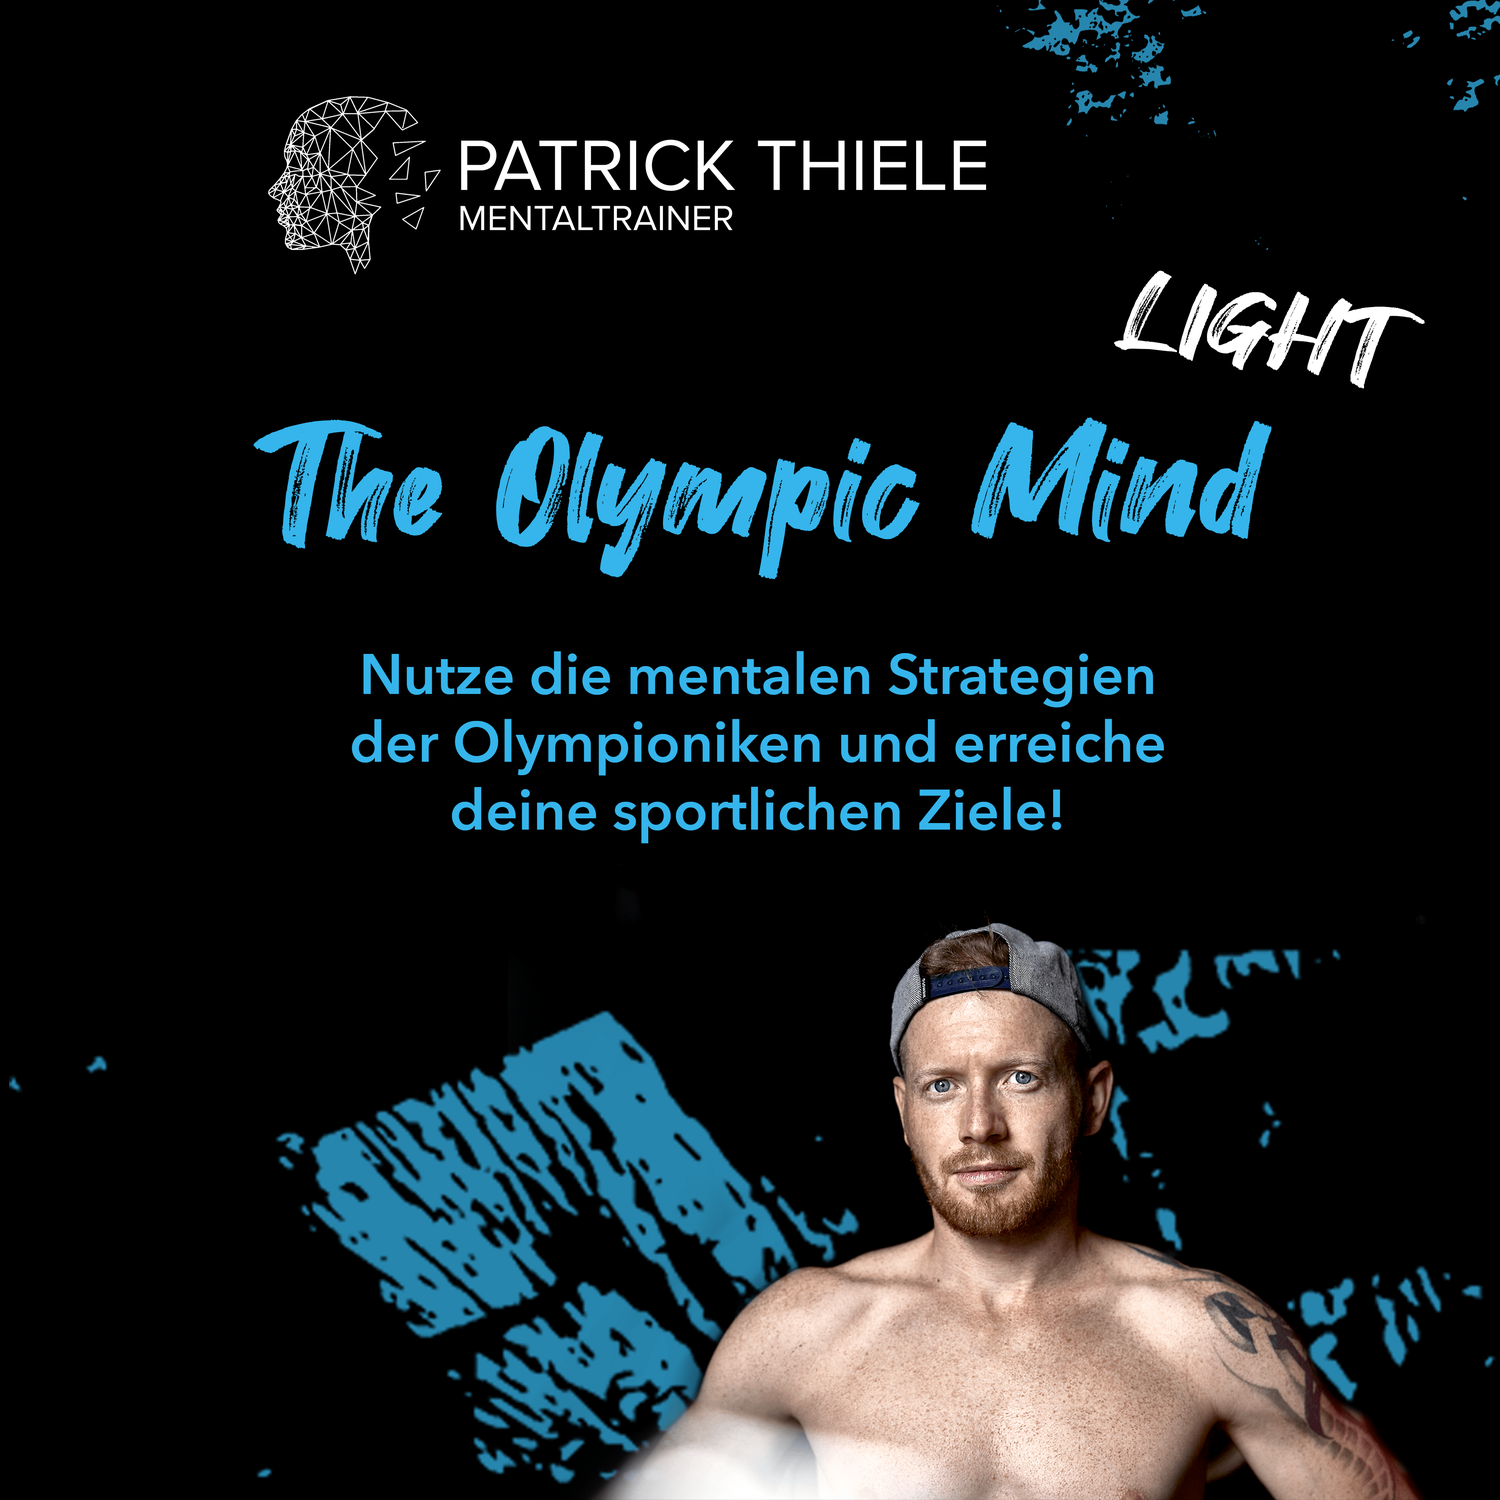 The Olympic Mind